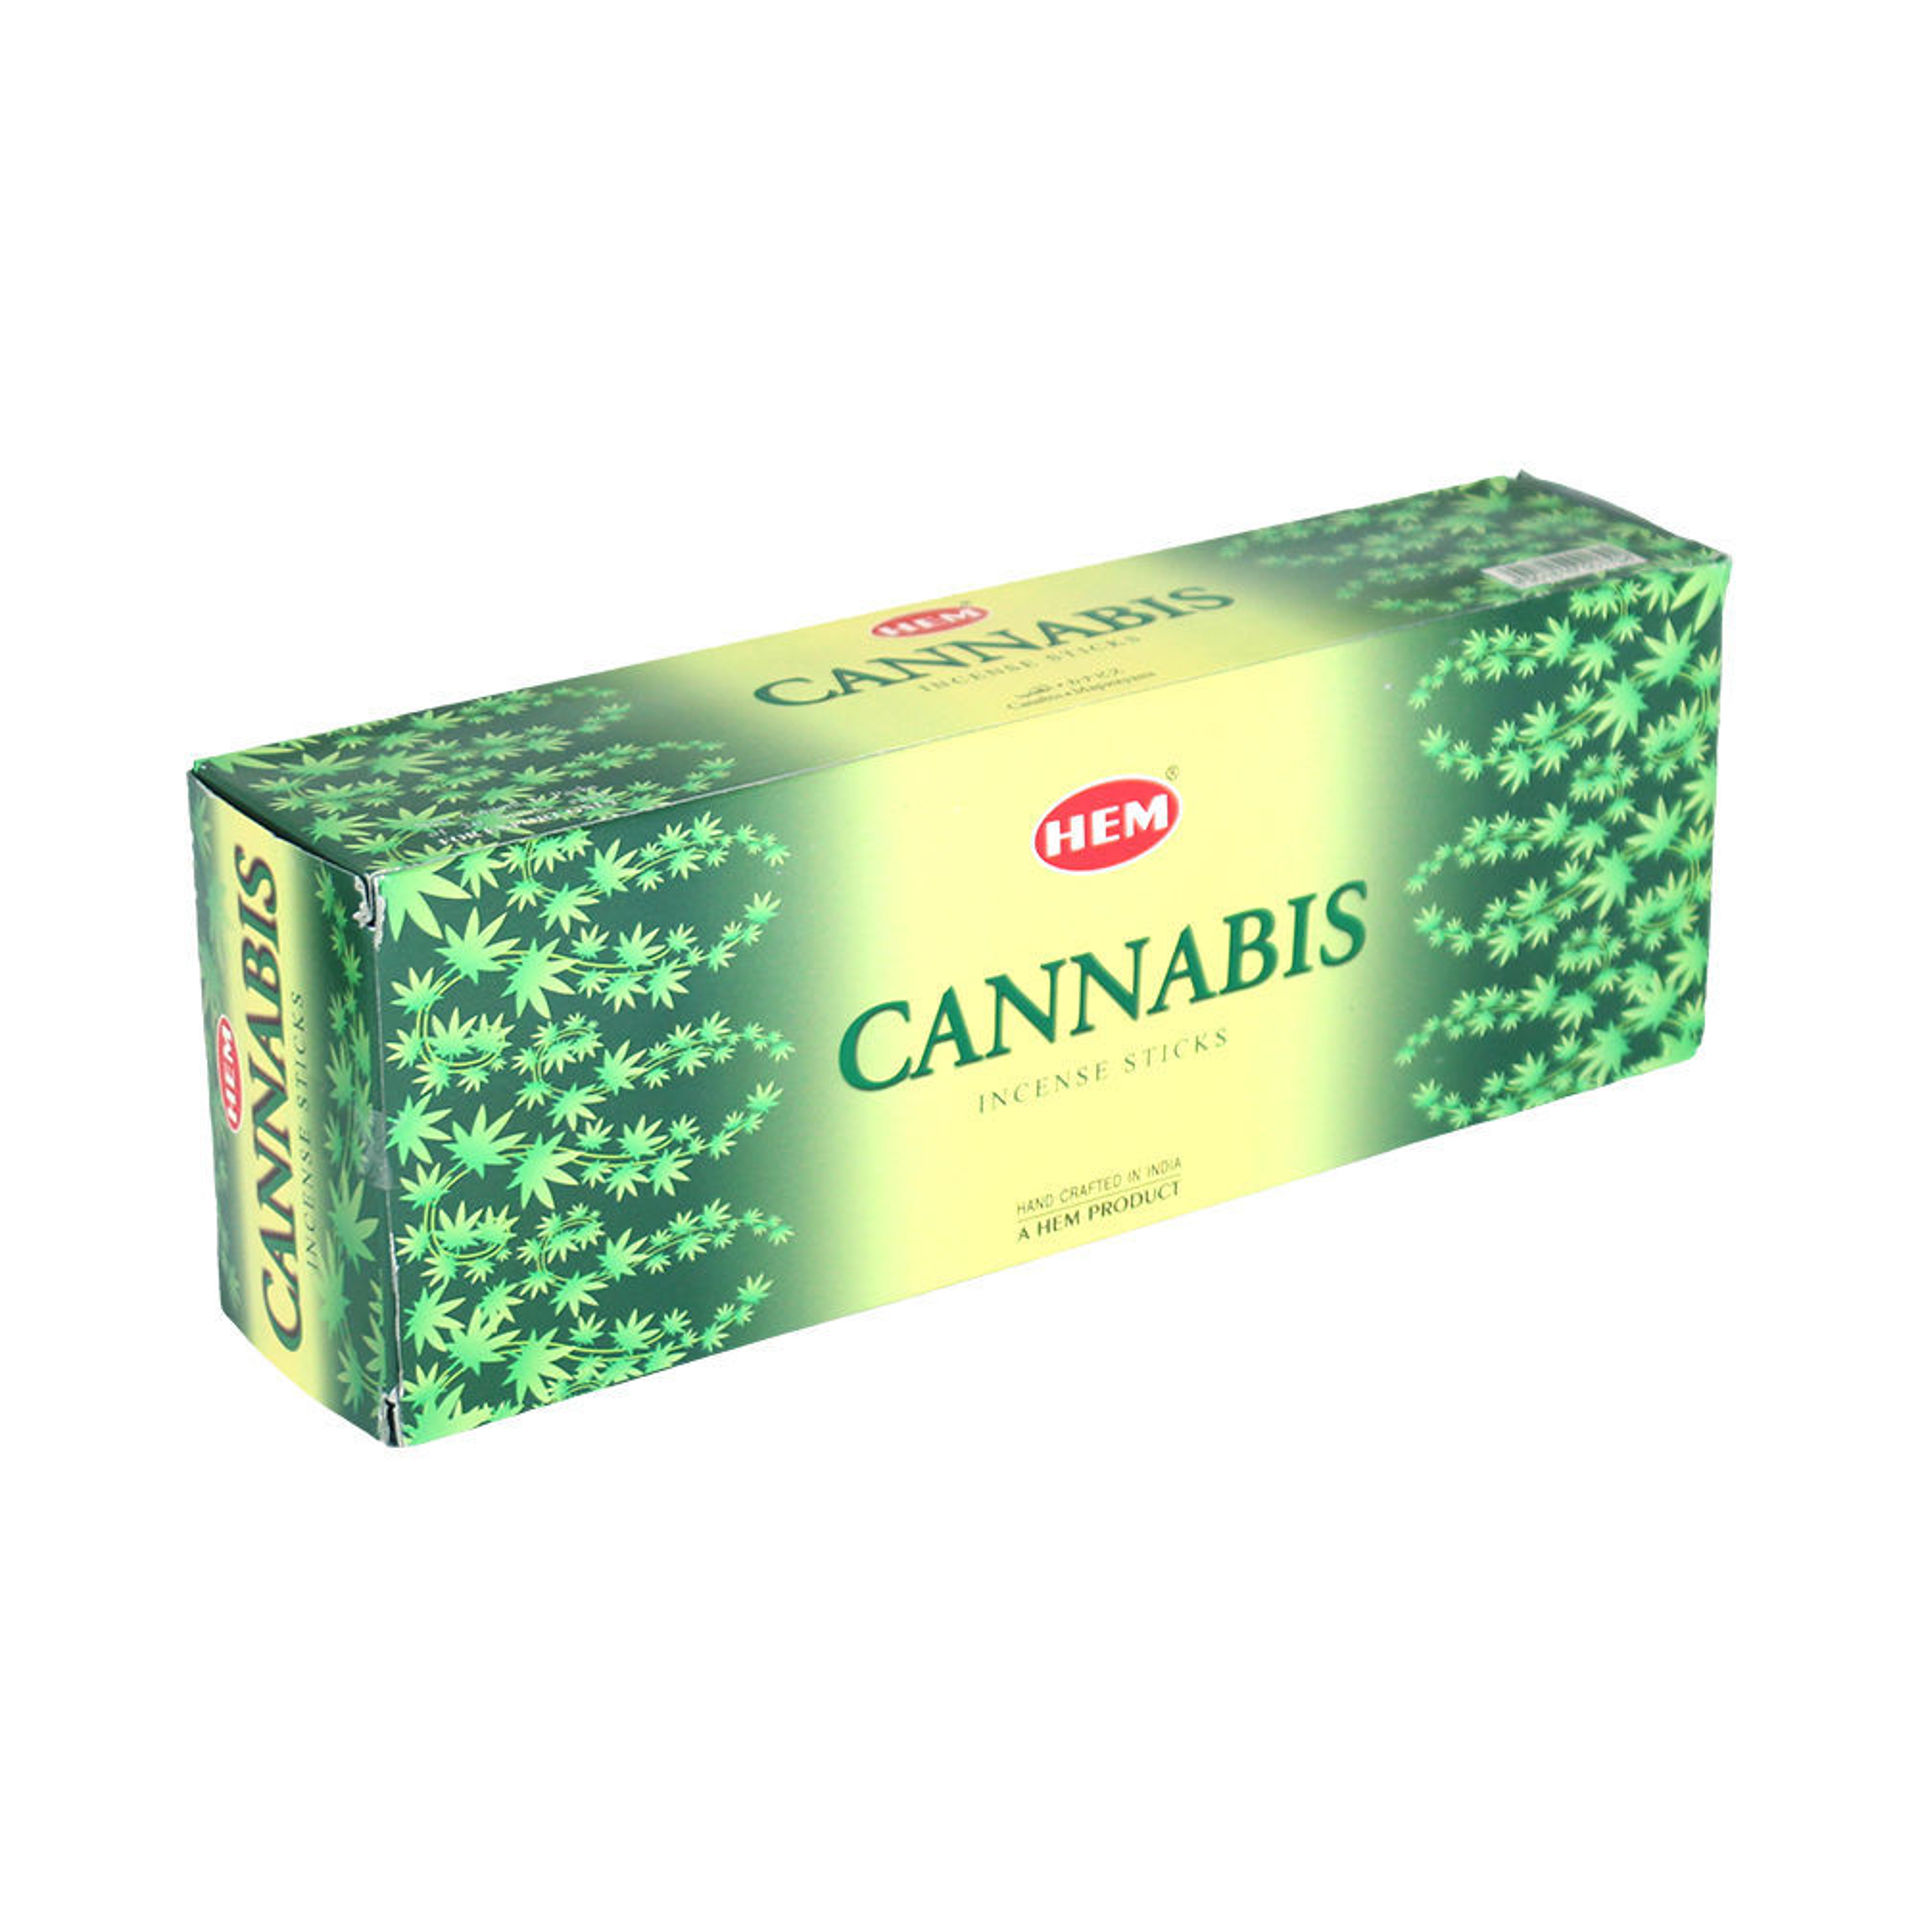 Picture of Cannabis Incense - 6 Pack = 120 Sticks